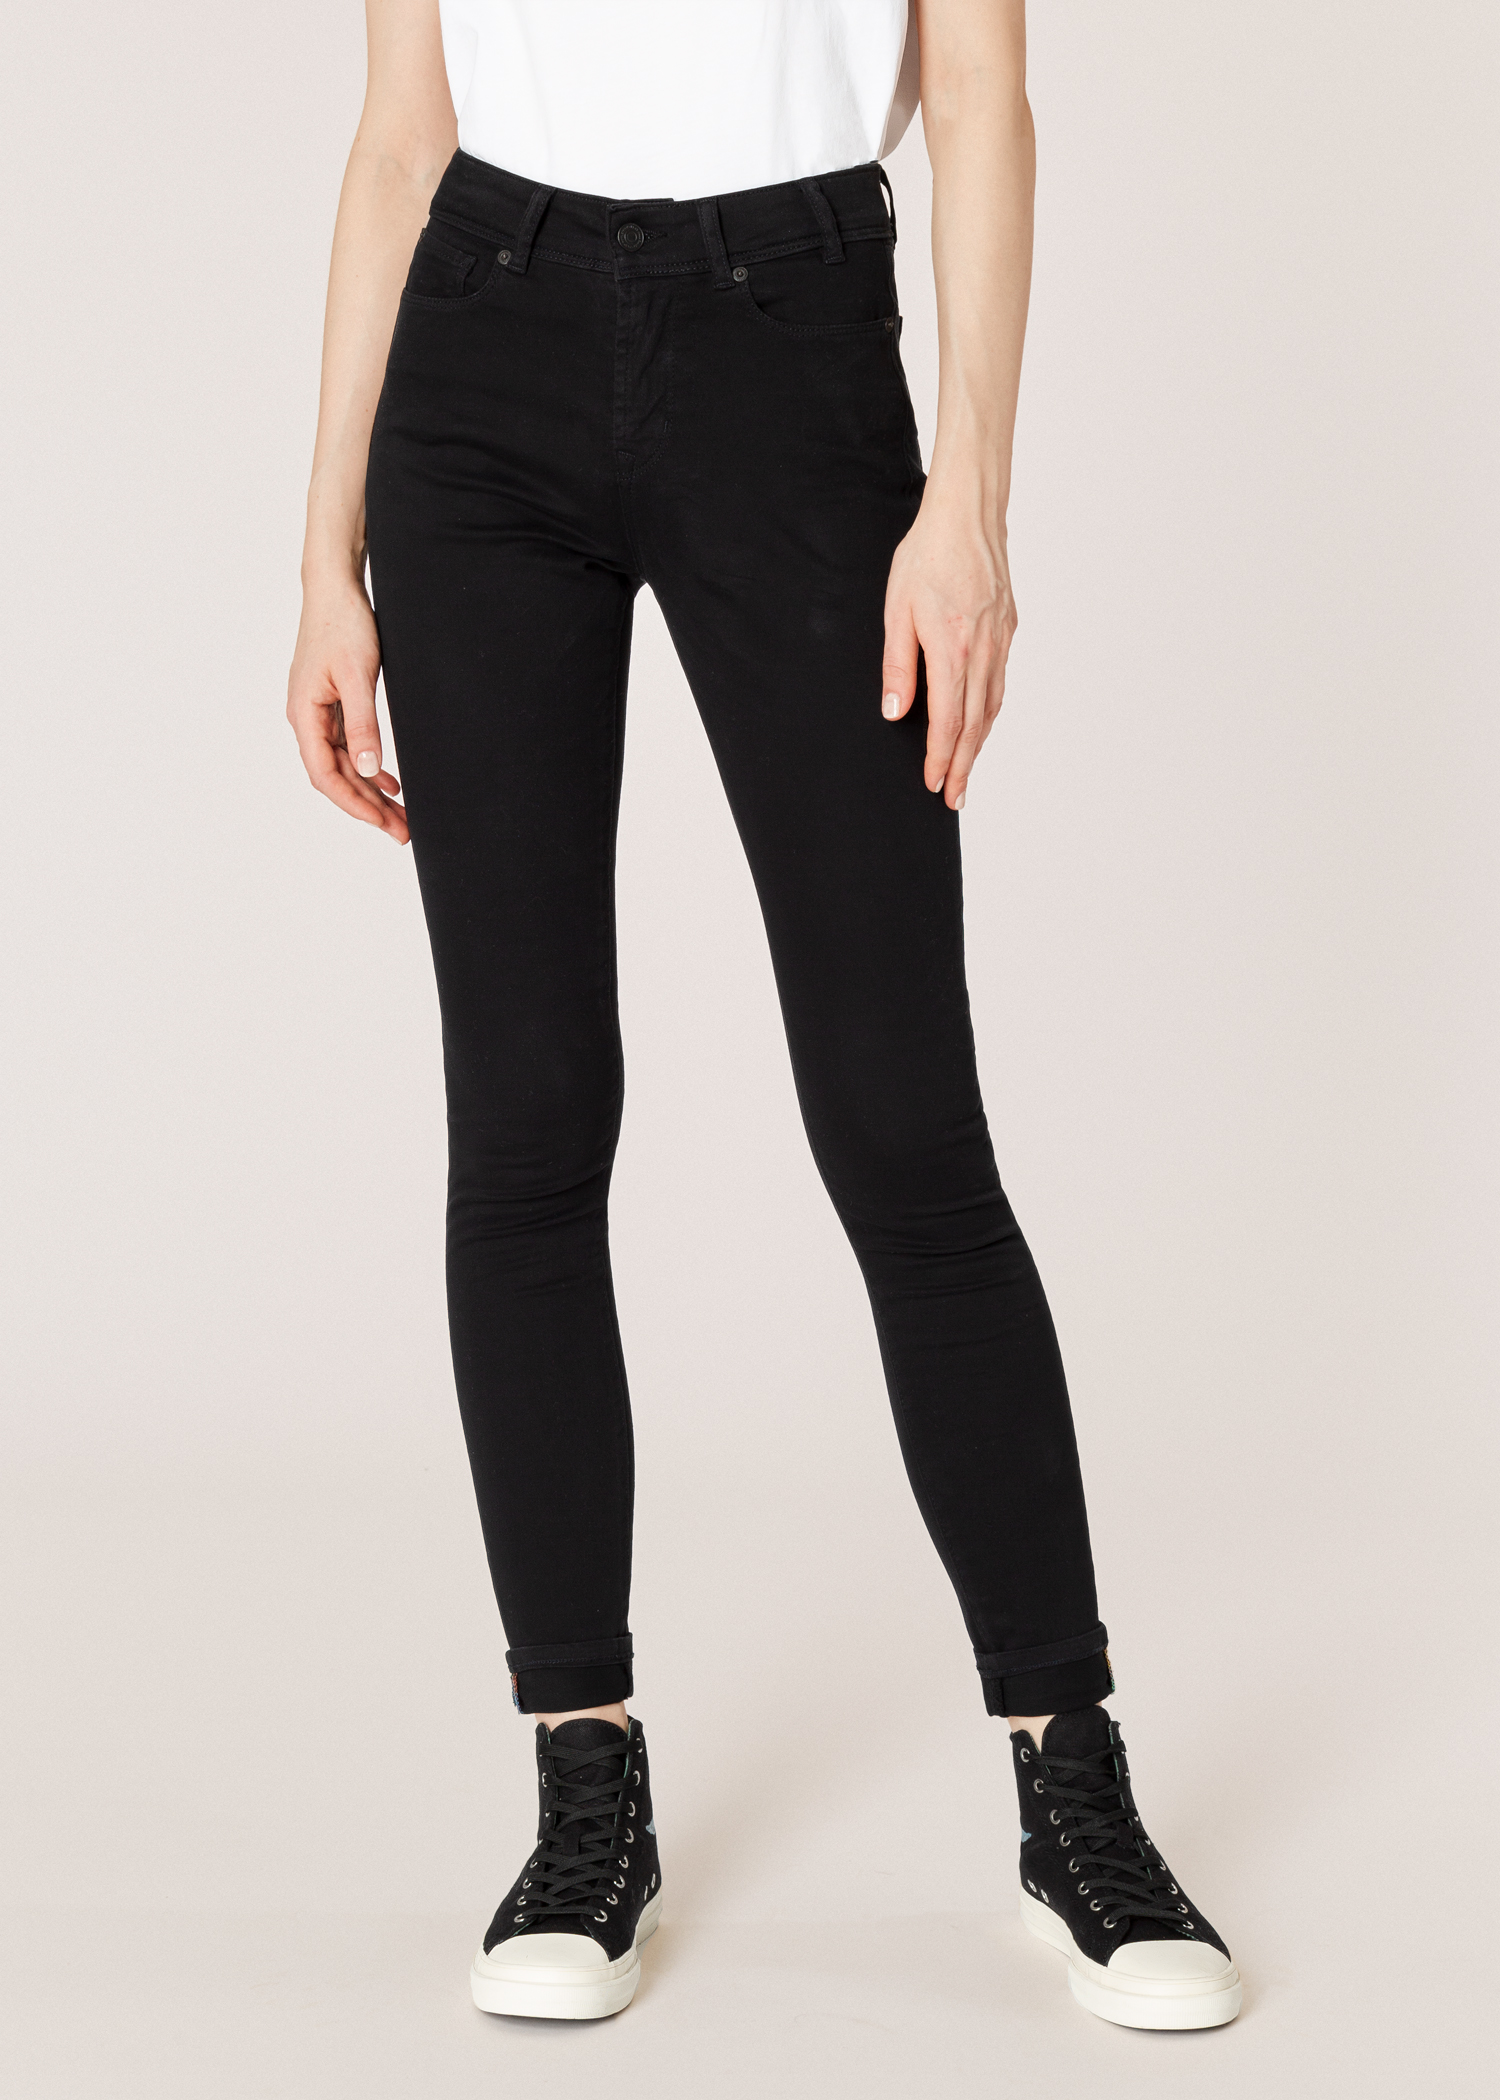 c994970f2f Model front close up- Women's Black Skinny-Fit Jeans by Paul Smith